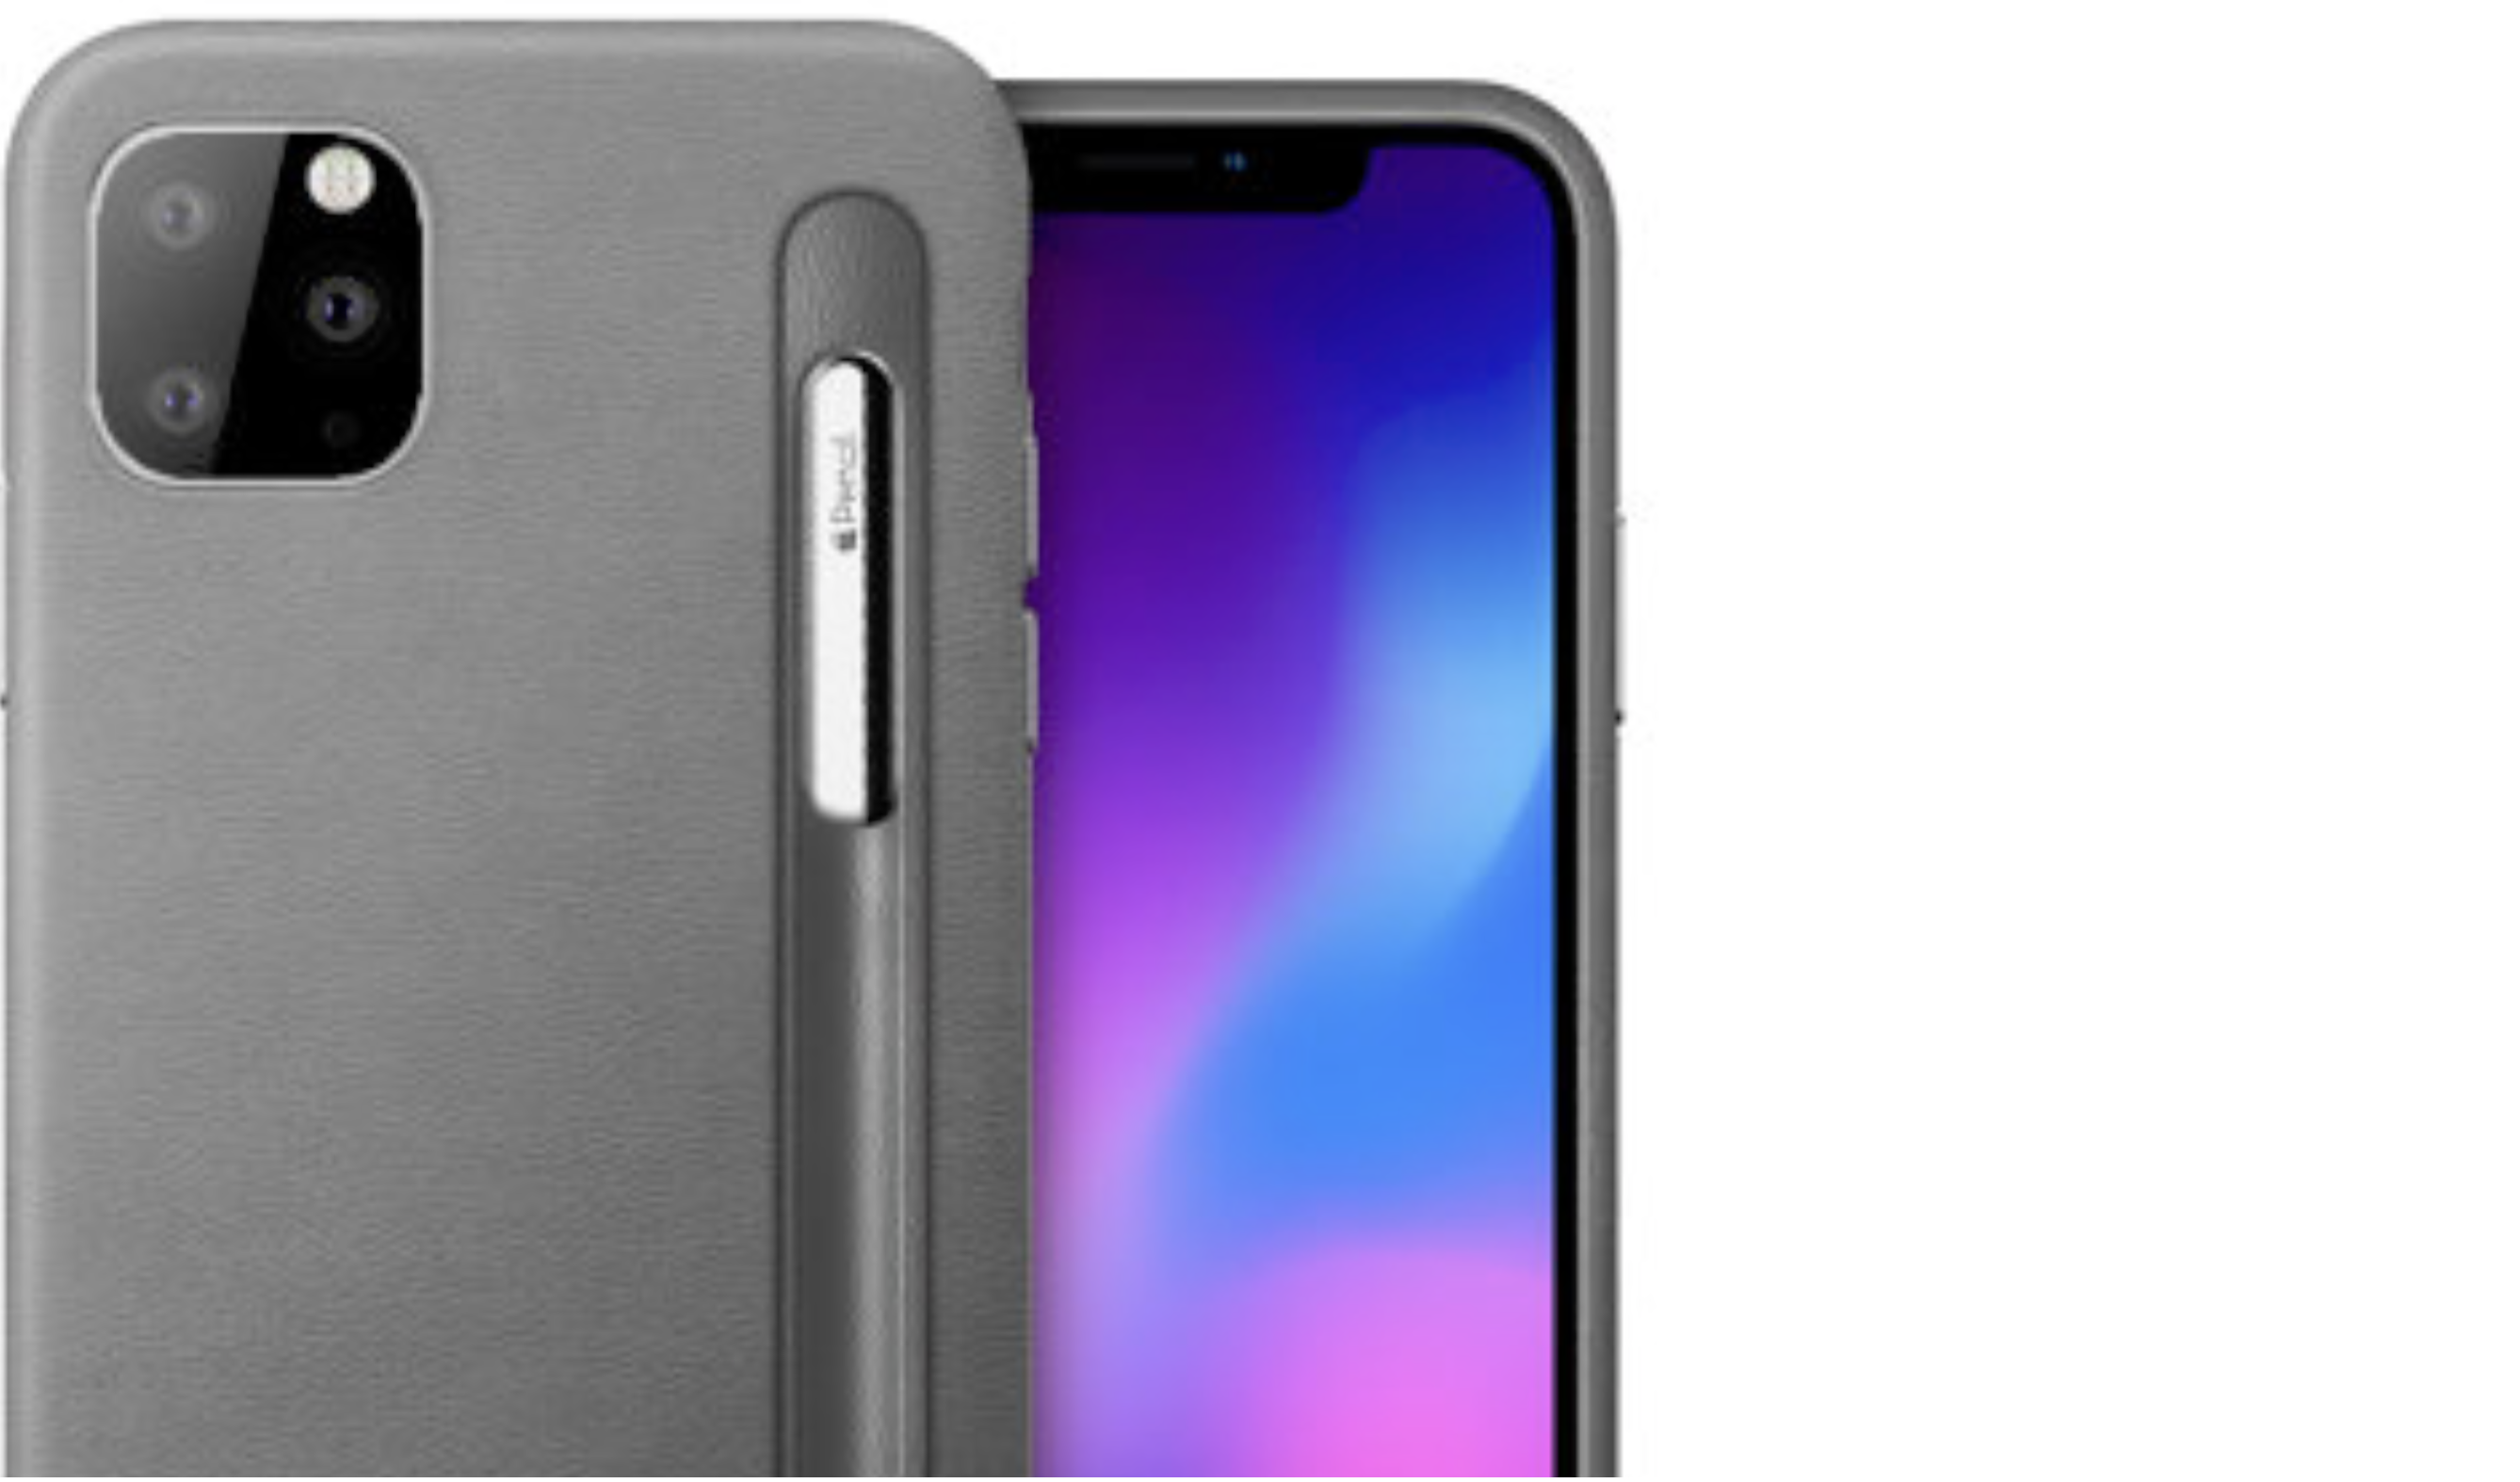 Alleged iPhone 11 cases showing Apple Pencil.